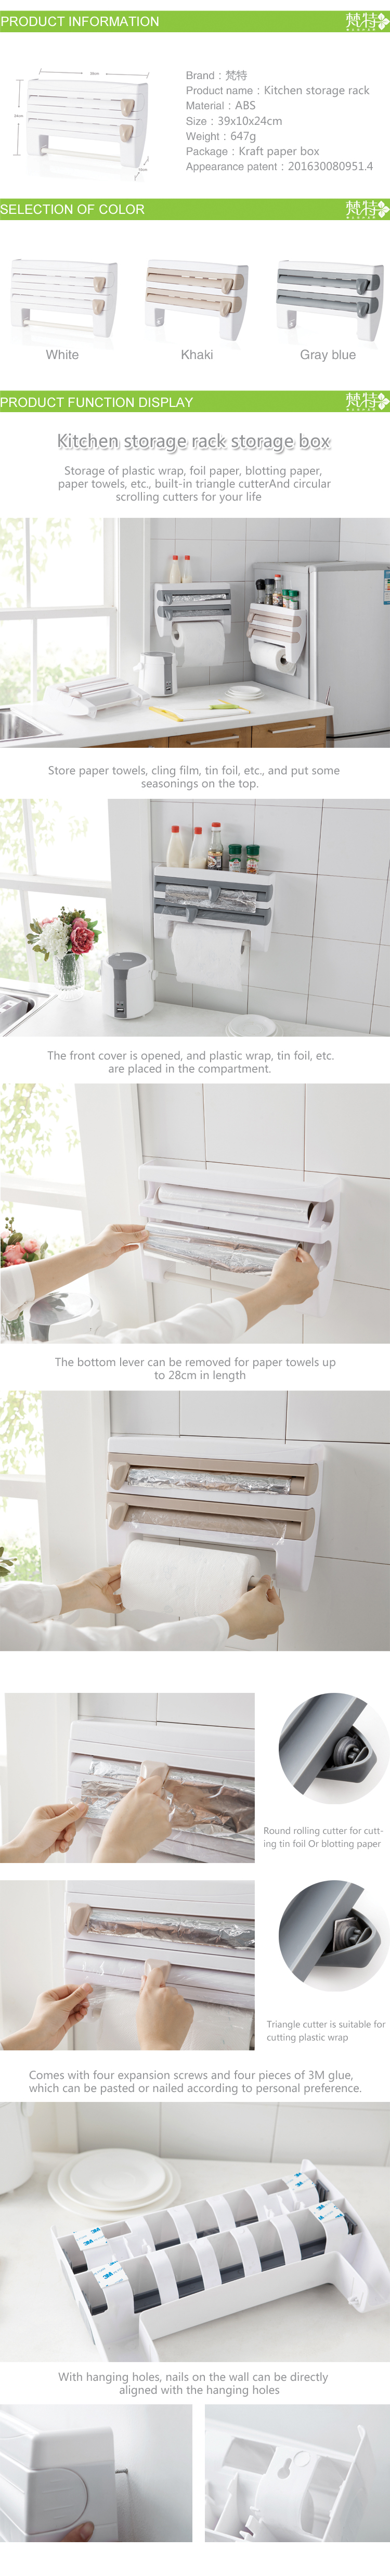 Kitchen wall-mounted  paper roll/cling film storage rack  with  cutting